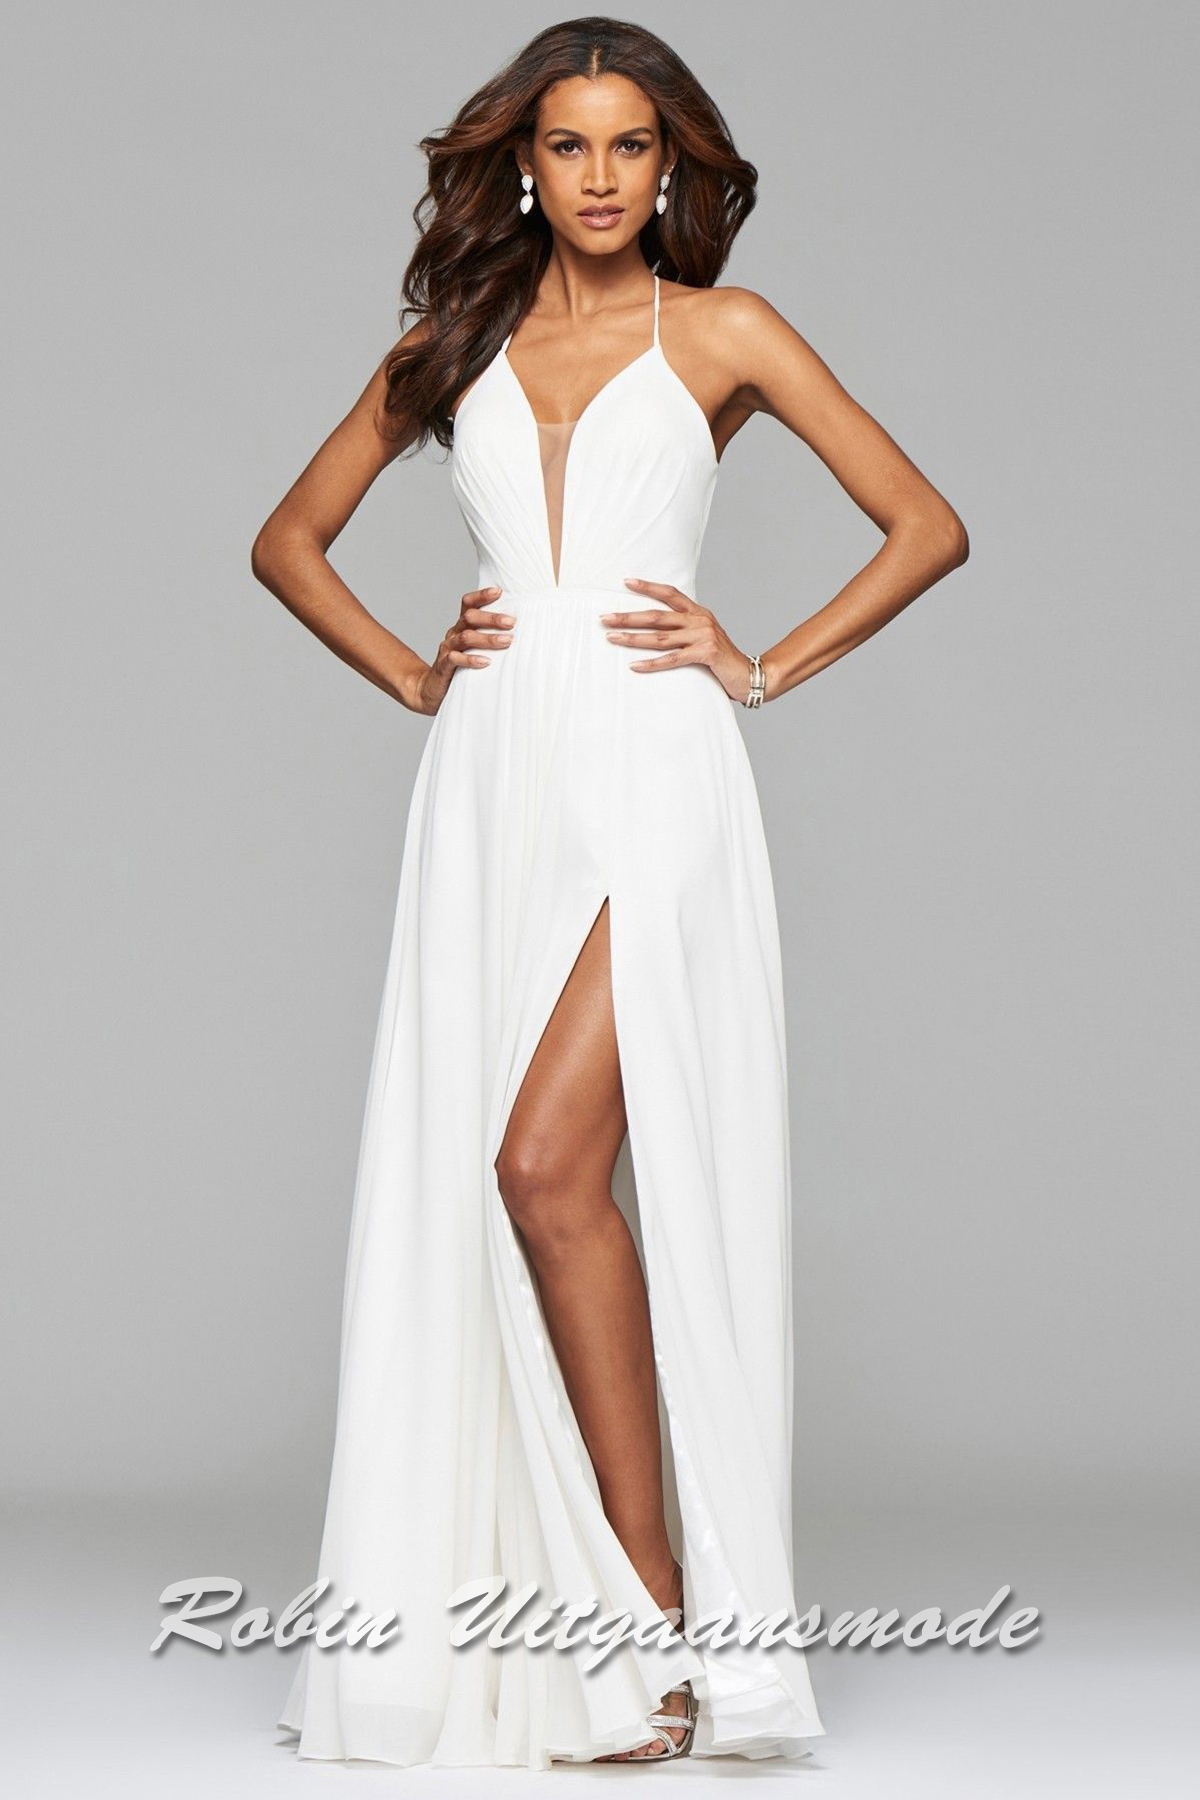 ed98ec059b2c5 White wedding dress with V-neck, spaghetti straps and slit | modelnr g-